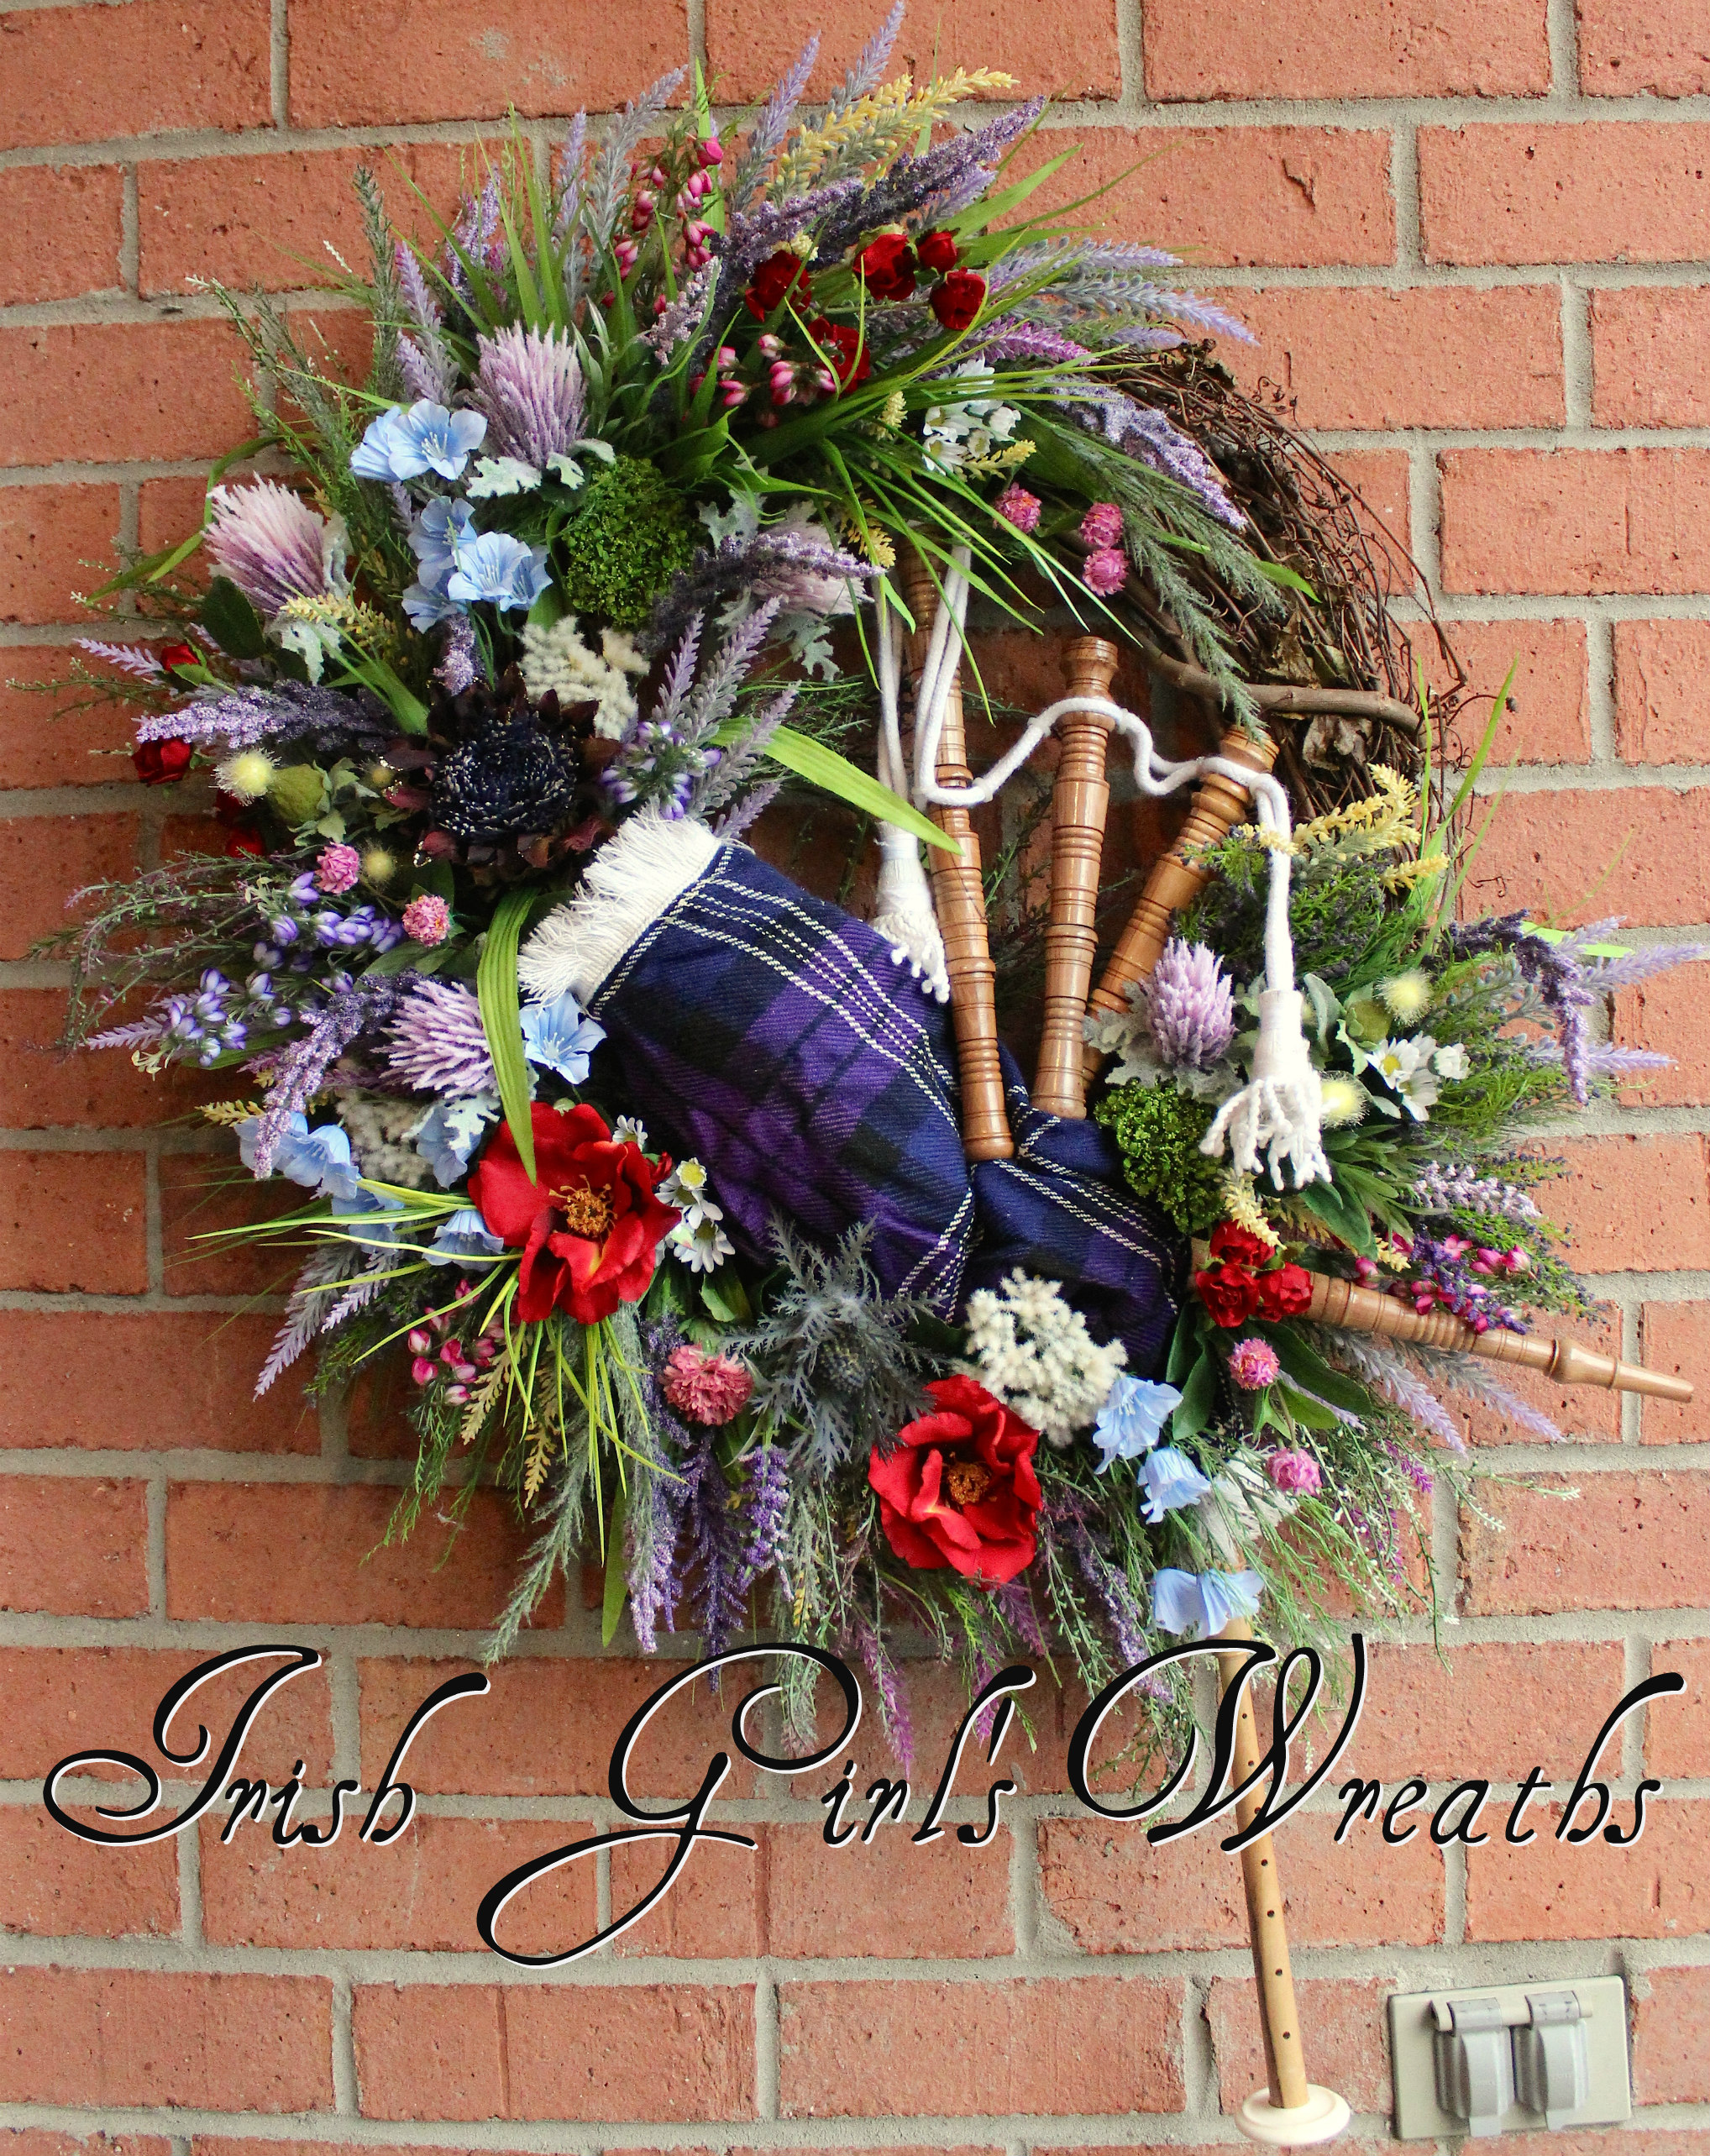 XL Pride Of Scotland Tartan Scottish Highland Bagpipes and Wildflowers Wreath, Heather and Thistle Wreath